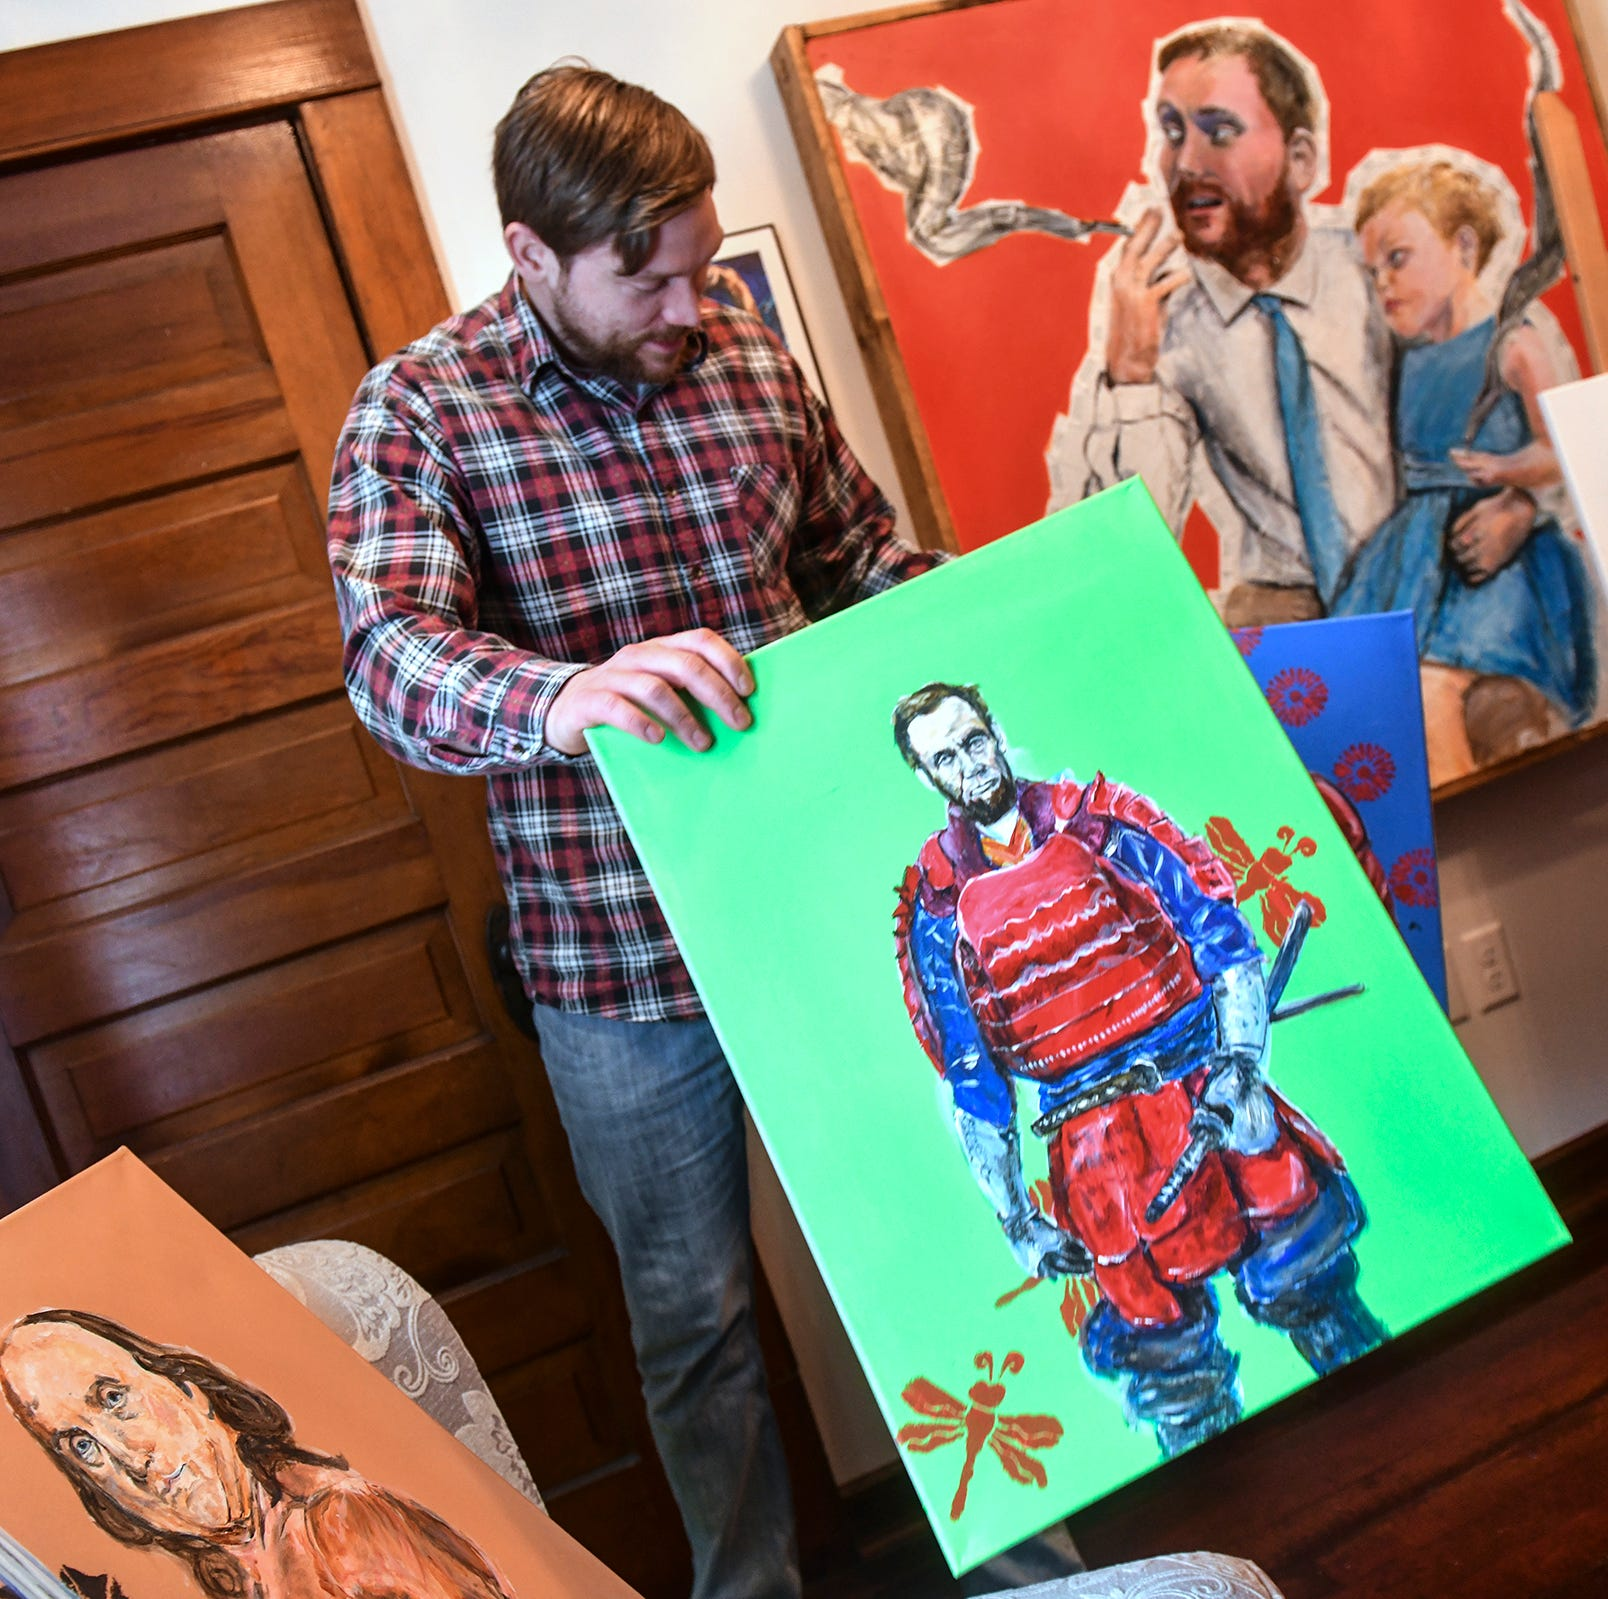 St. Cloud artist Adam Spaeth on color, community and how everyone can 'leave their mark'